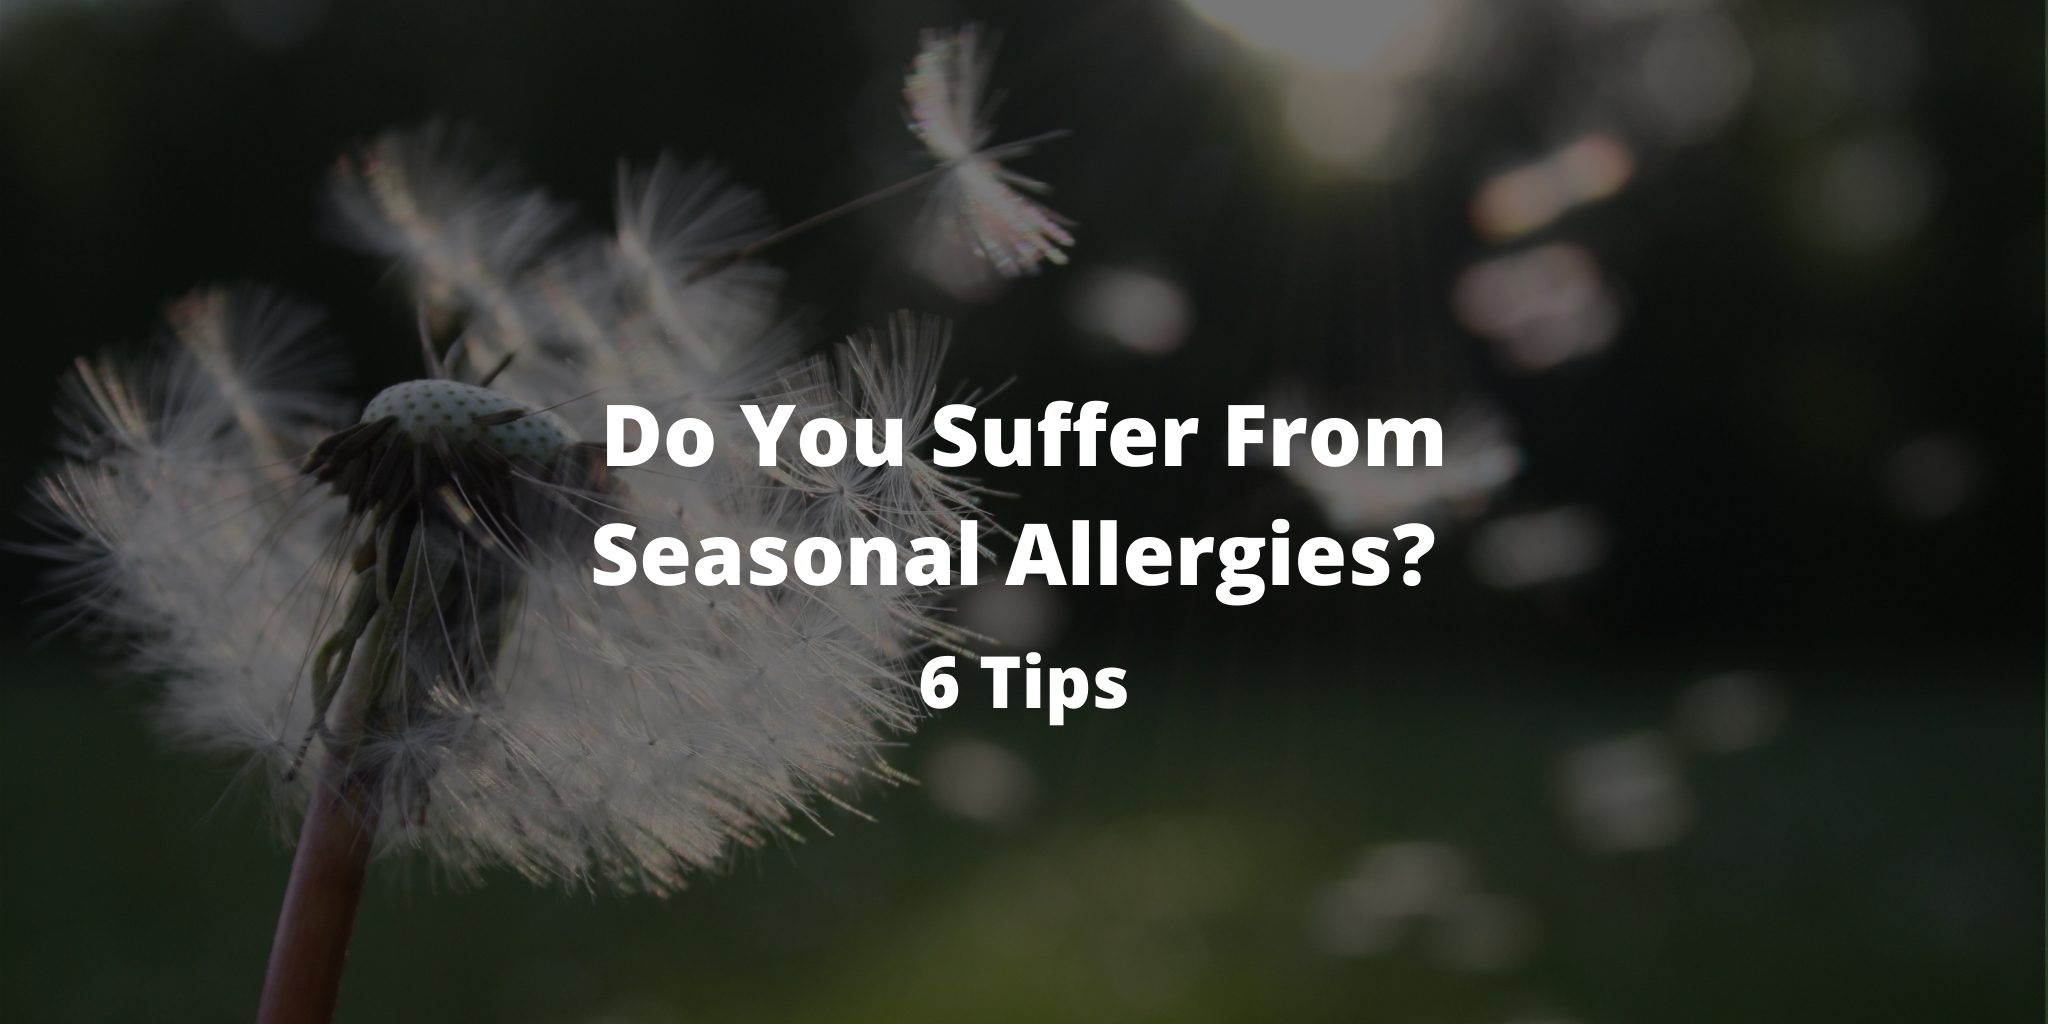 Do You Suffer From Seasonal Allergies? 6 Tips